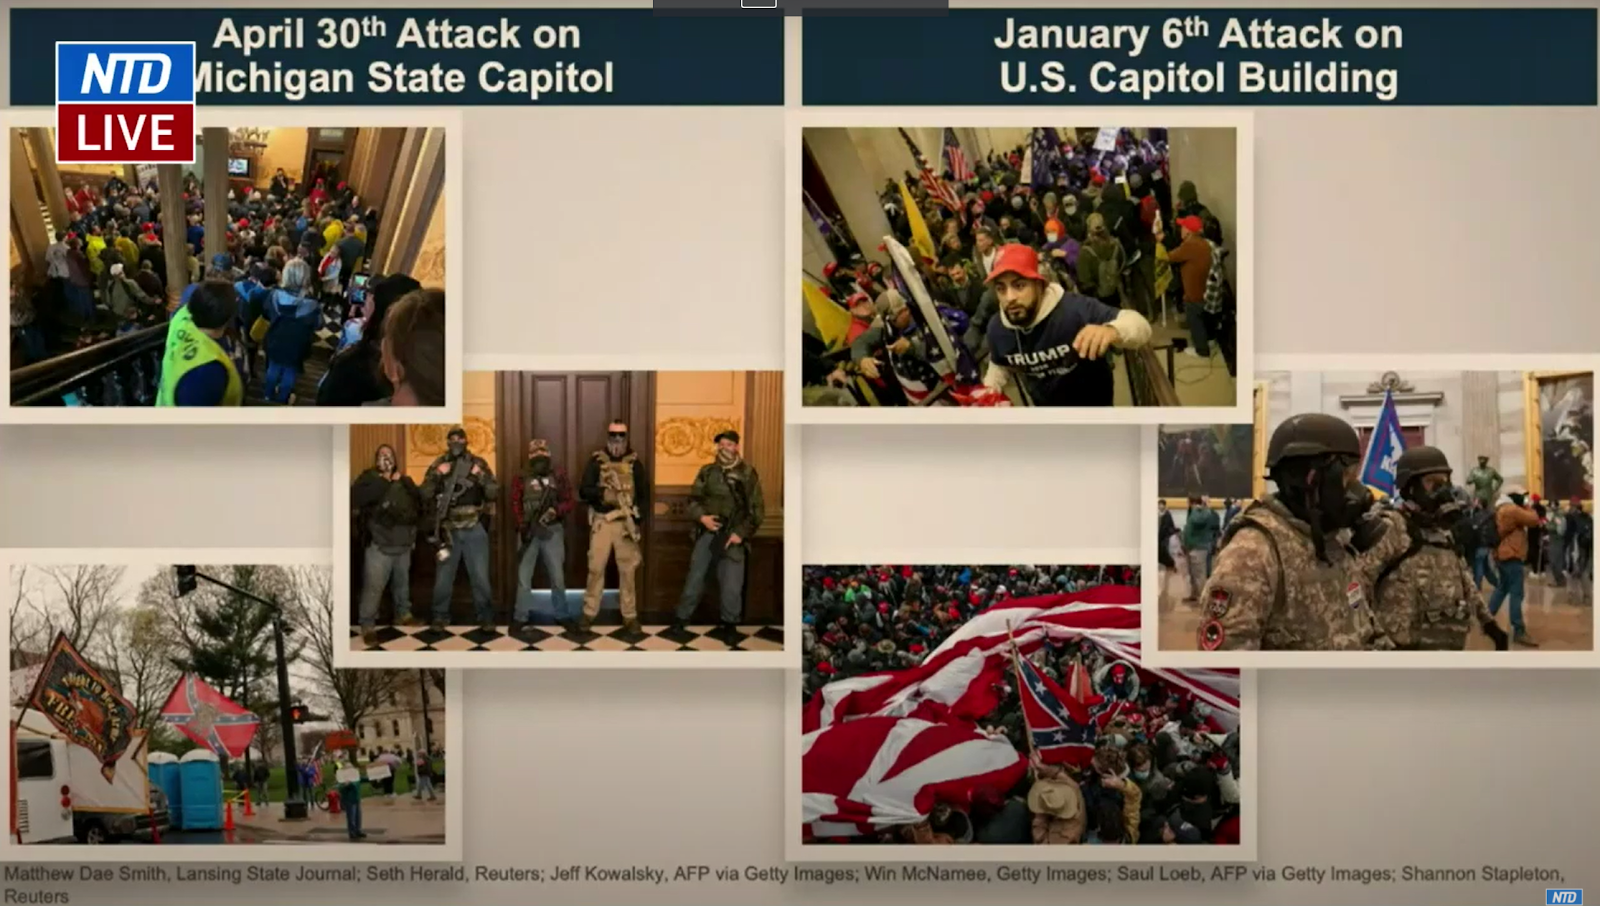 Screenshot of Rep. Jamie Raskin's (D-MD) early presentation on Feb. 11. Raskin pinned the blame on the April 30, 2020 entry of the Michigan State Capitol in response to Governor Gretchen Whitmer's novel coronavirus lockdown restrictions on President Trump.